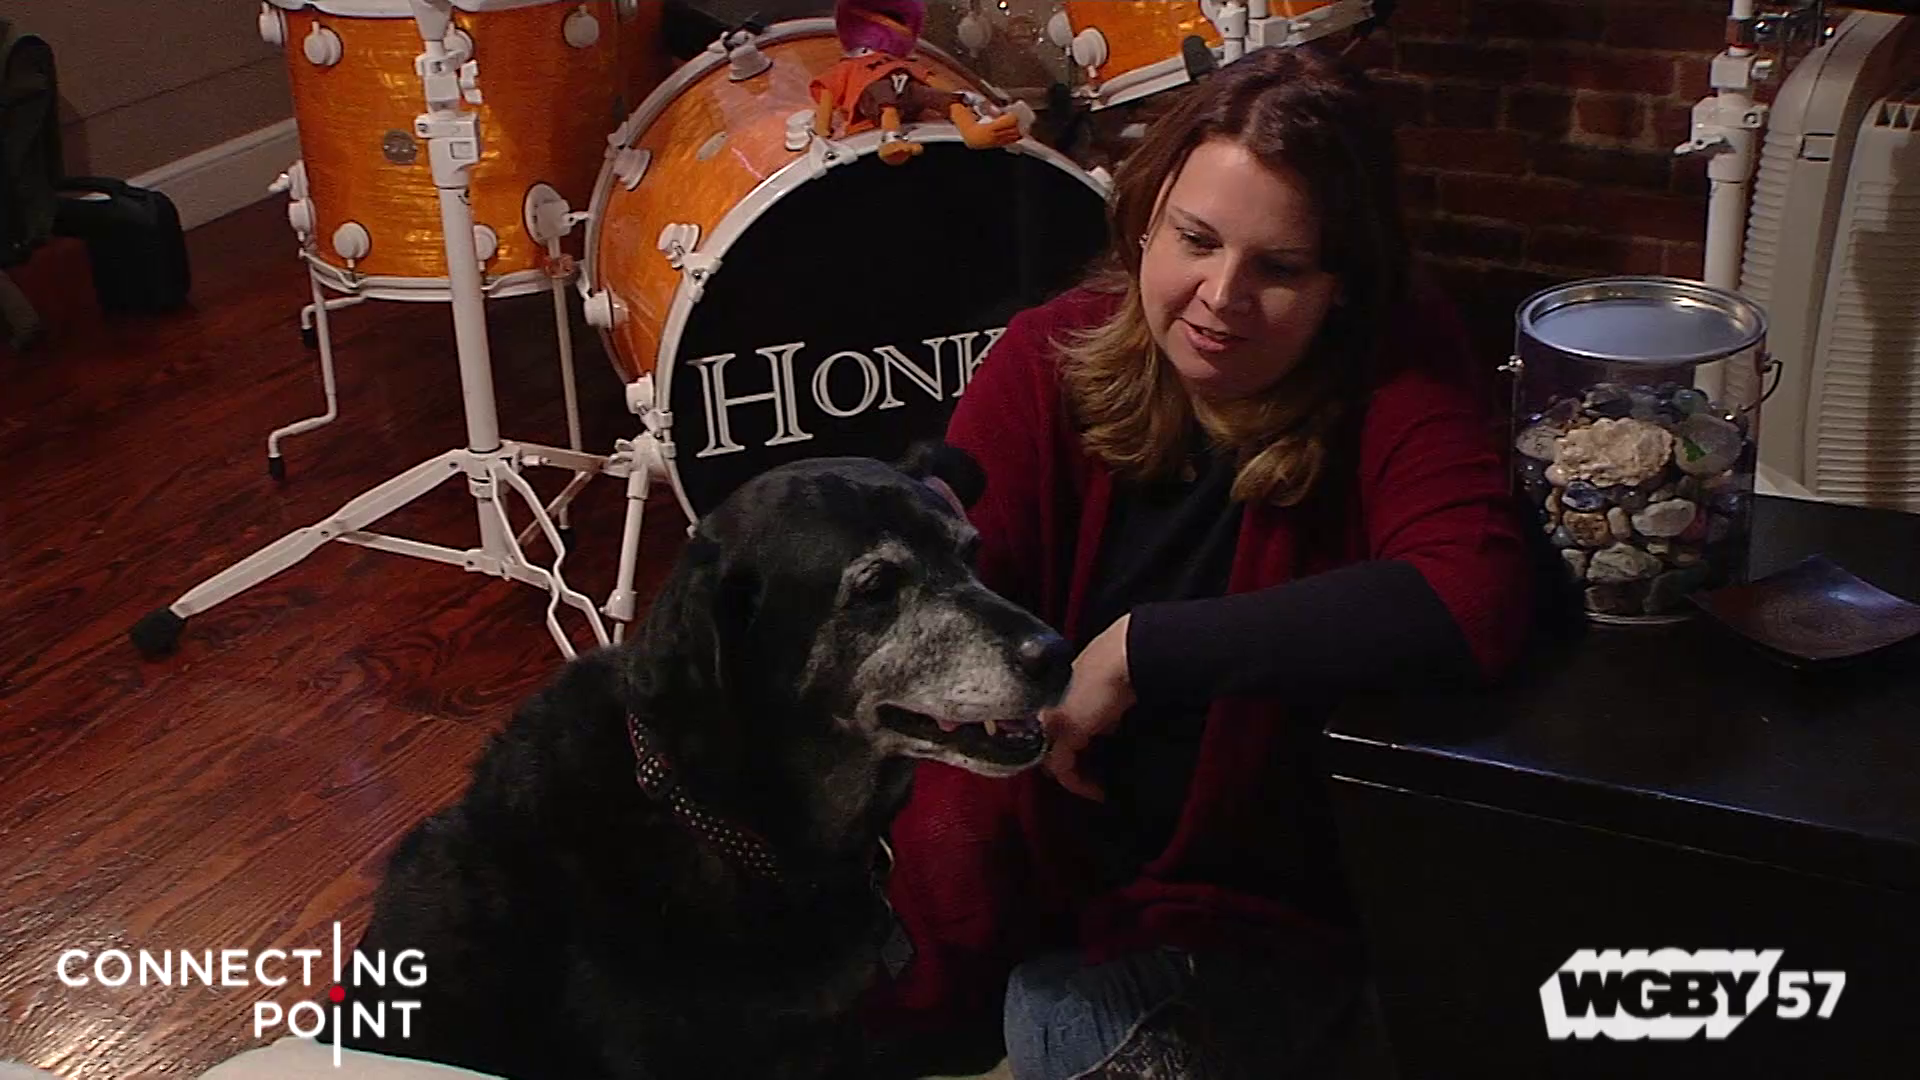 They say a dog is a person's best friend, and for Marty Harris of Boston, that couldn't be more true. Adele is the name of the dog in question, and one of the first cardiac alert dogs in the country. Connecting Point's Tina Martin has more about this special service dog that is quite literally a life saver.